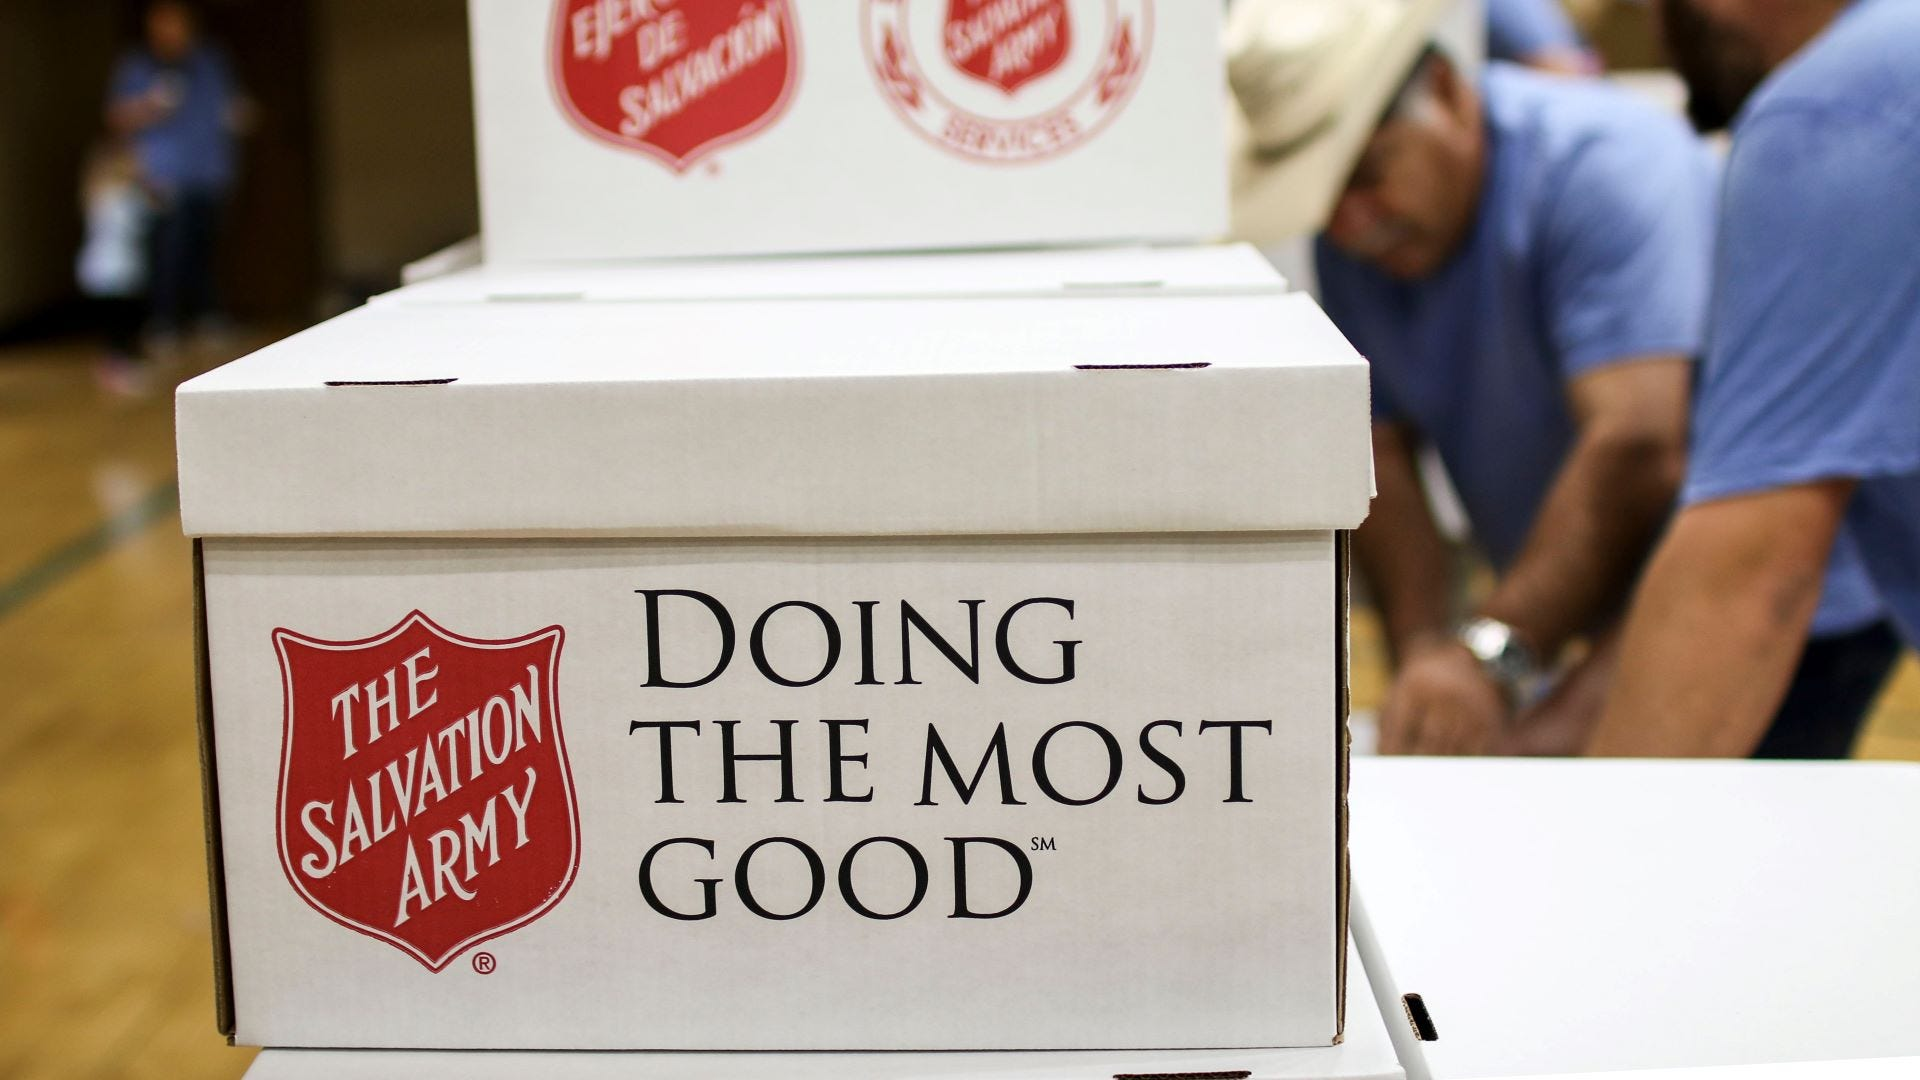 A Salvation Army donation box on a table.